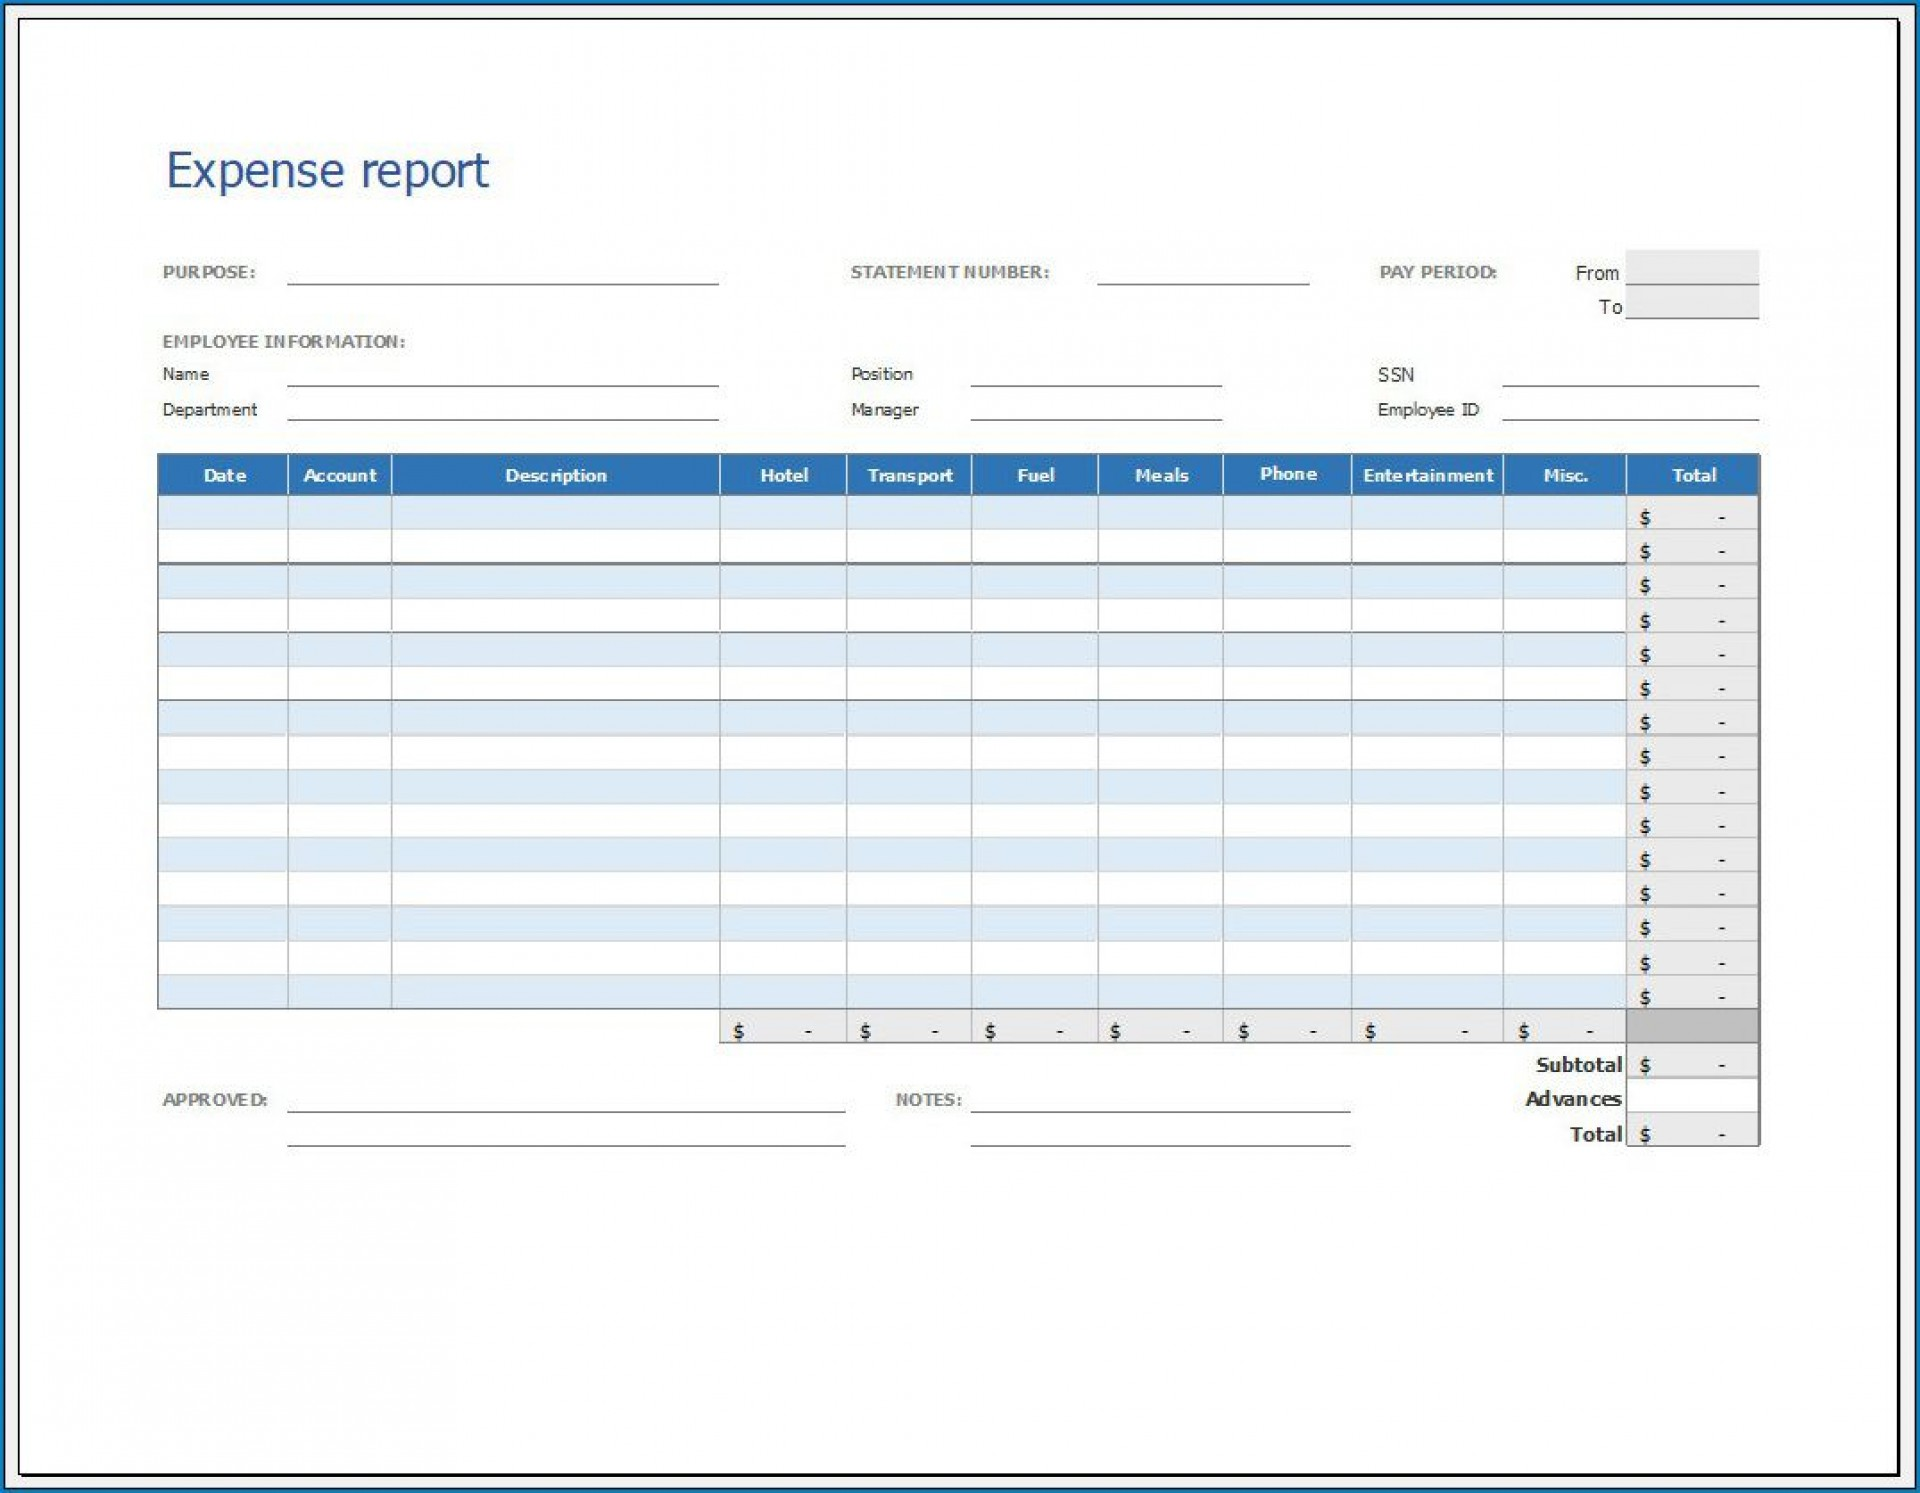 005 Unforgettable Expense Report Template Free Highest Quality  Pdf Excel Download1920